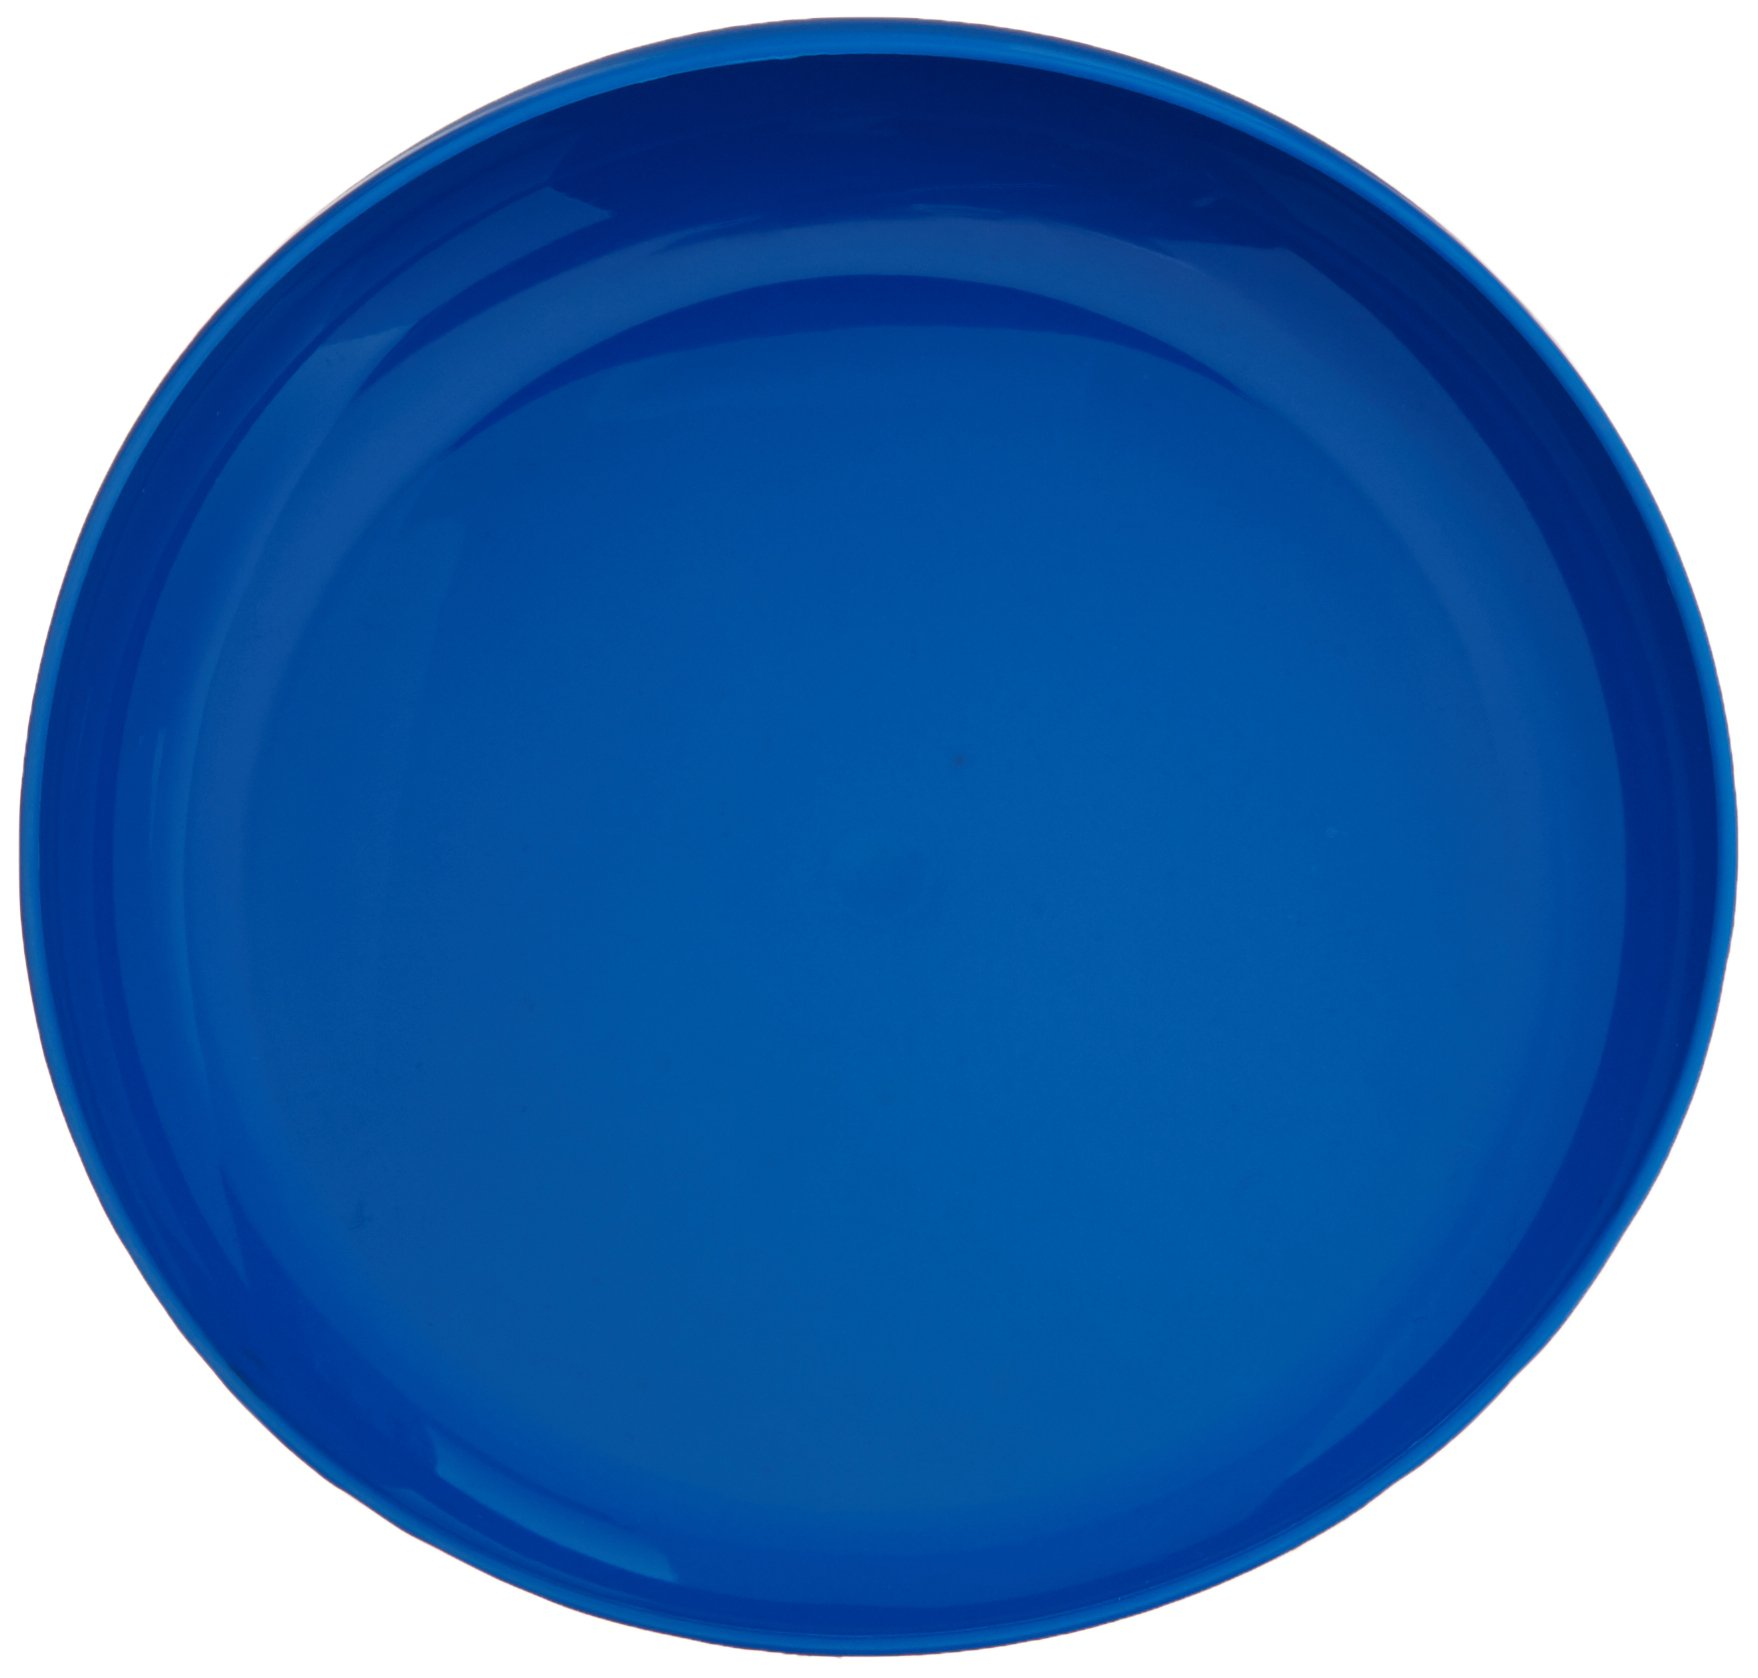 Sammons Preston Blue Round Scoop Dish, Unbreakable 8'' Scooper Bowl for Elderly, Disabled, & Handicapped, Plate with Non Skid Rubber Padded Bottom for Independent Eating, Self-Feeding Aid